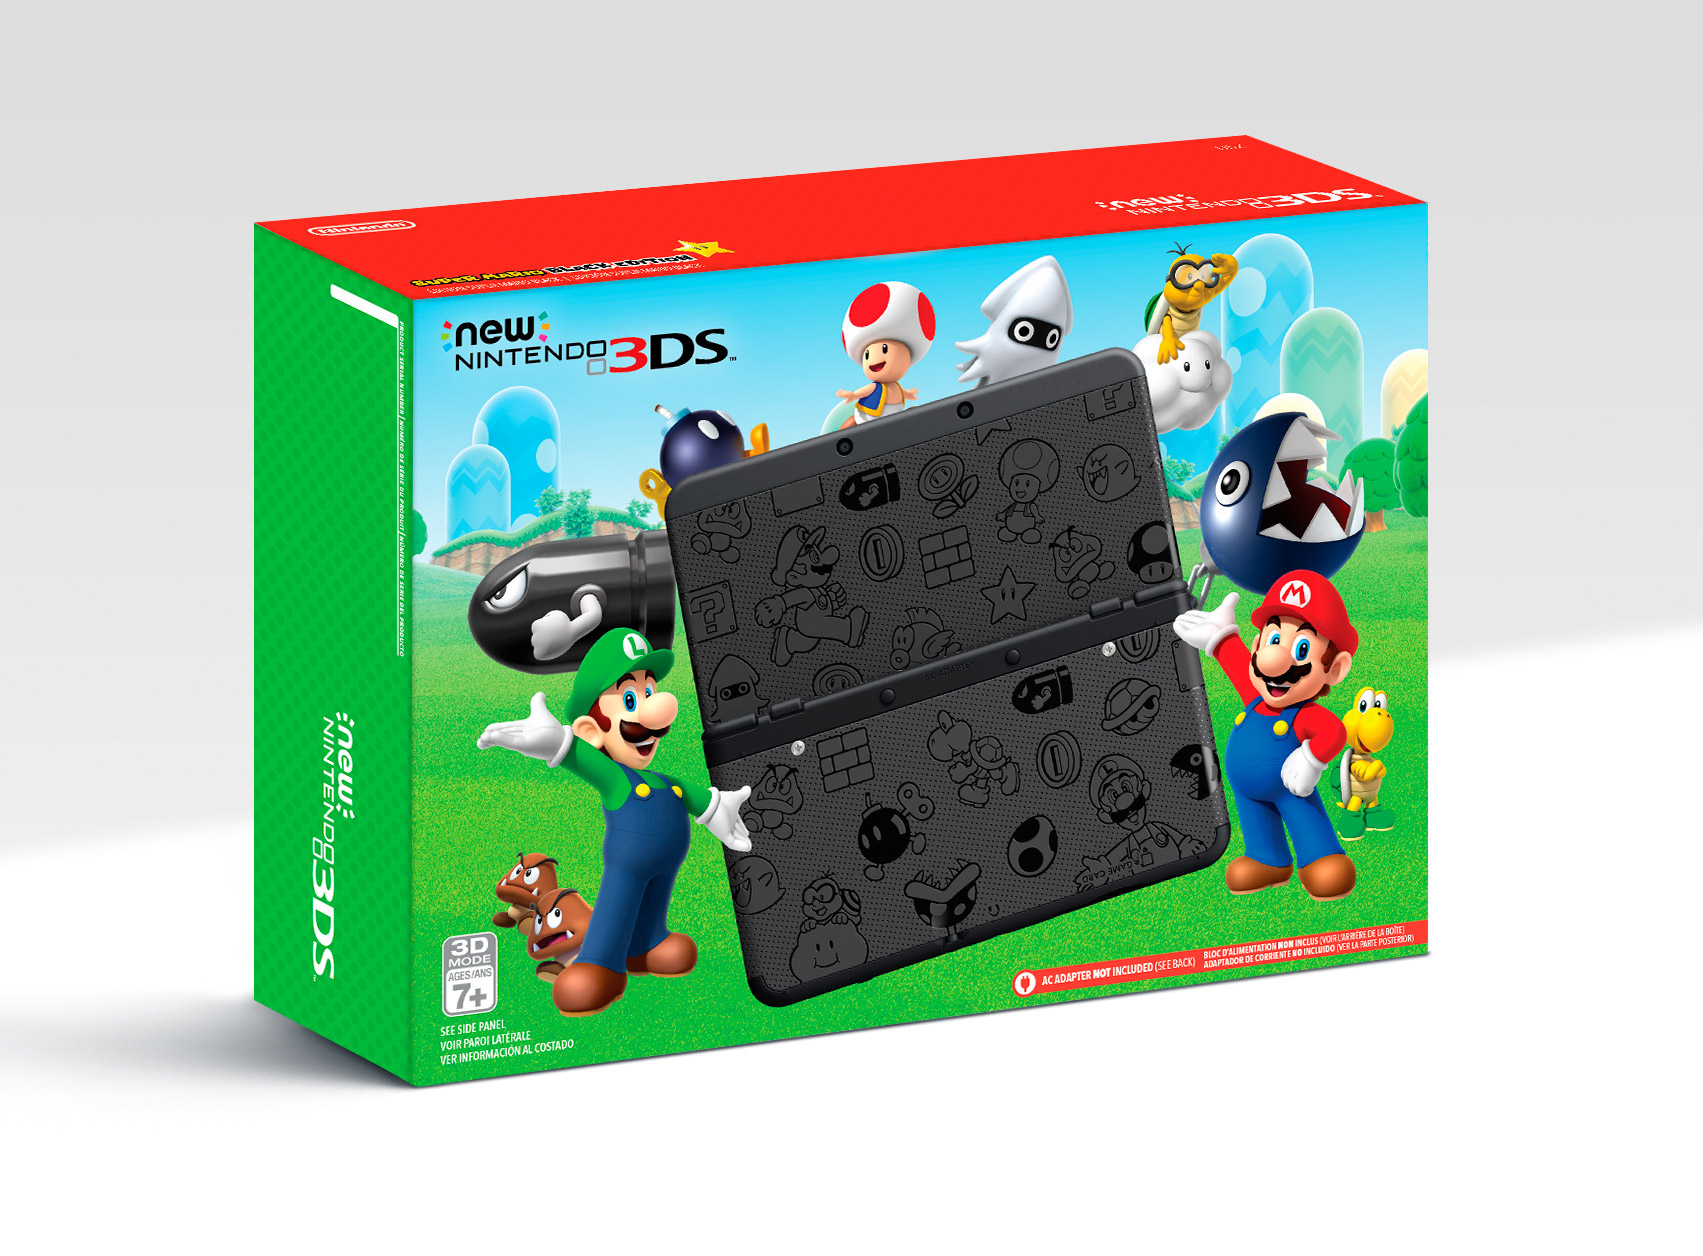 New Nintendo 3DS Black Friday deal, only $99 (update)